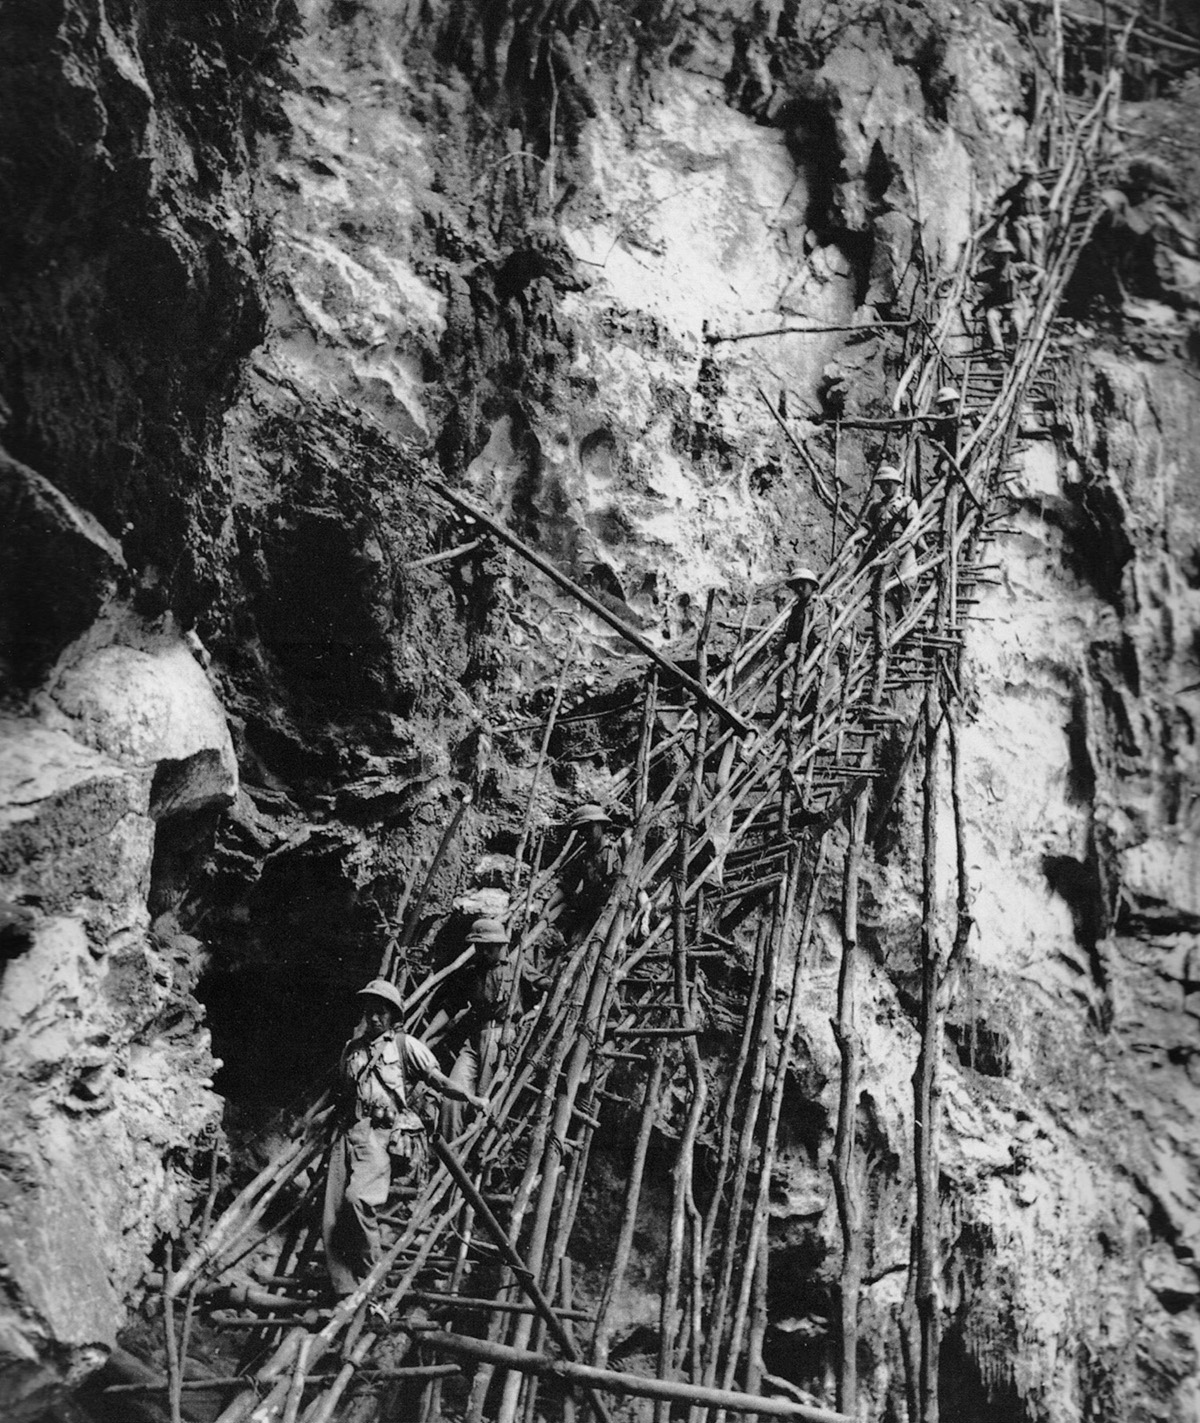 1966_quang_binh_province_cliffside_stairs.jpg